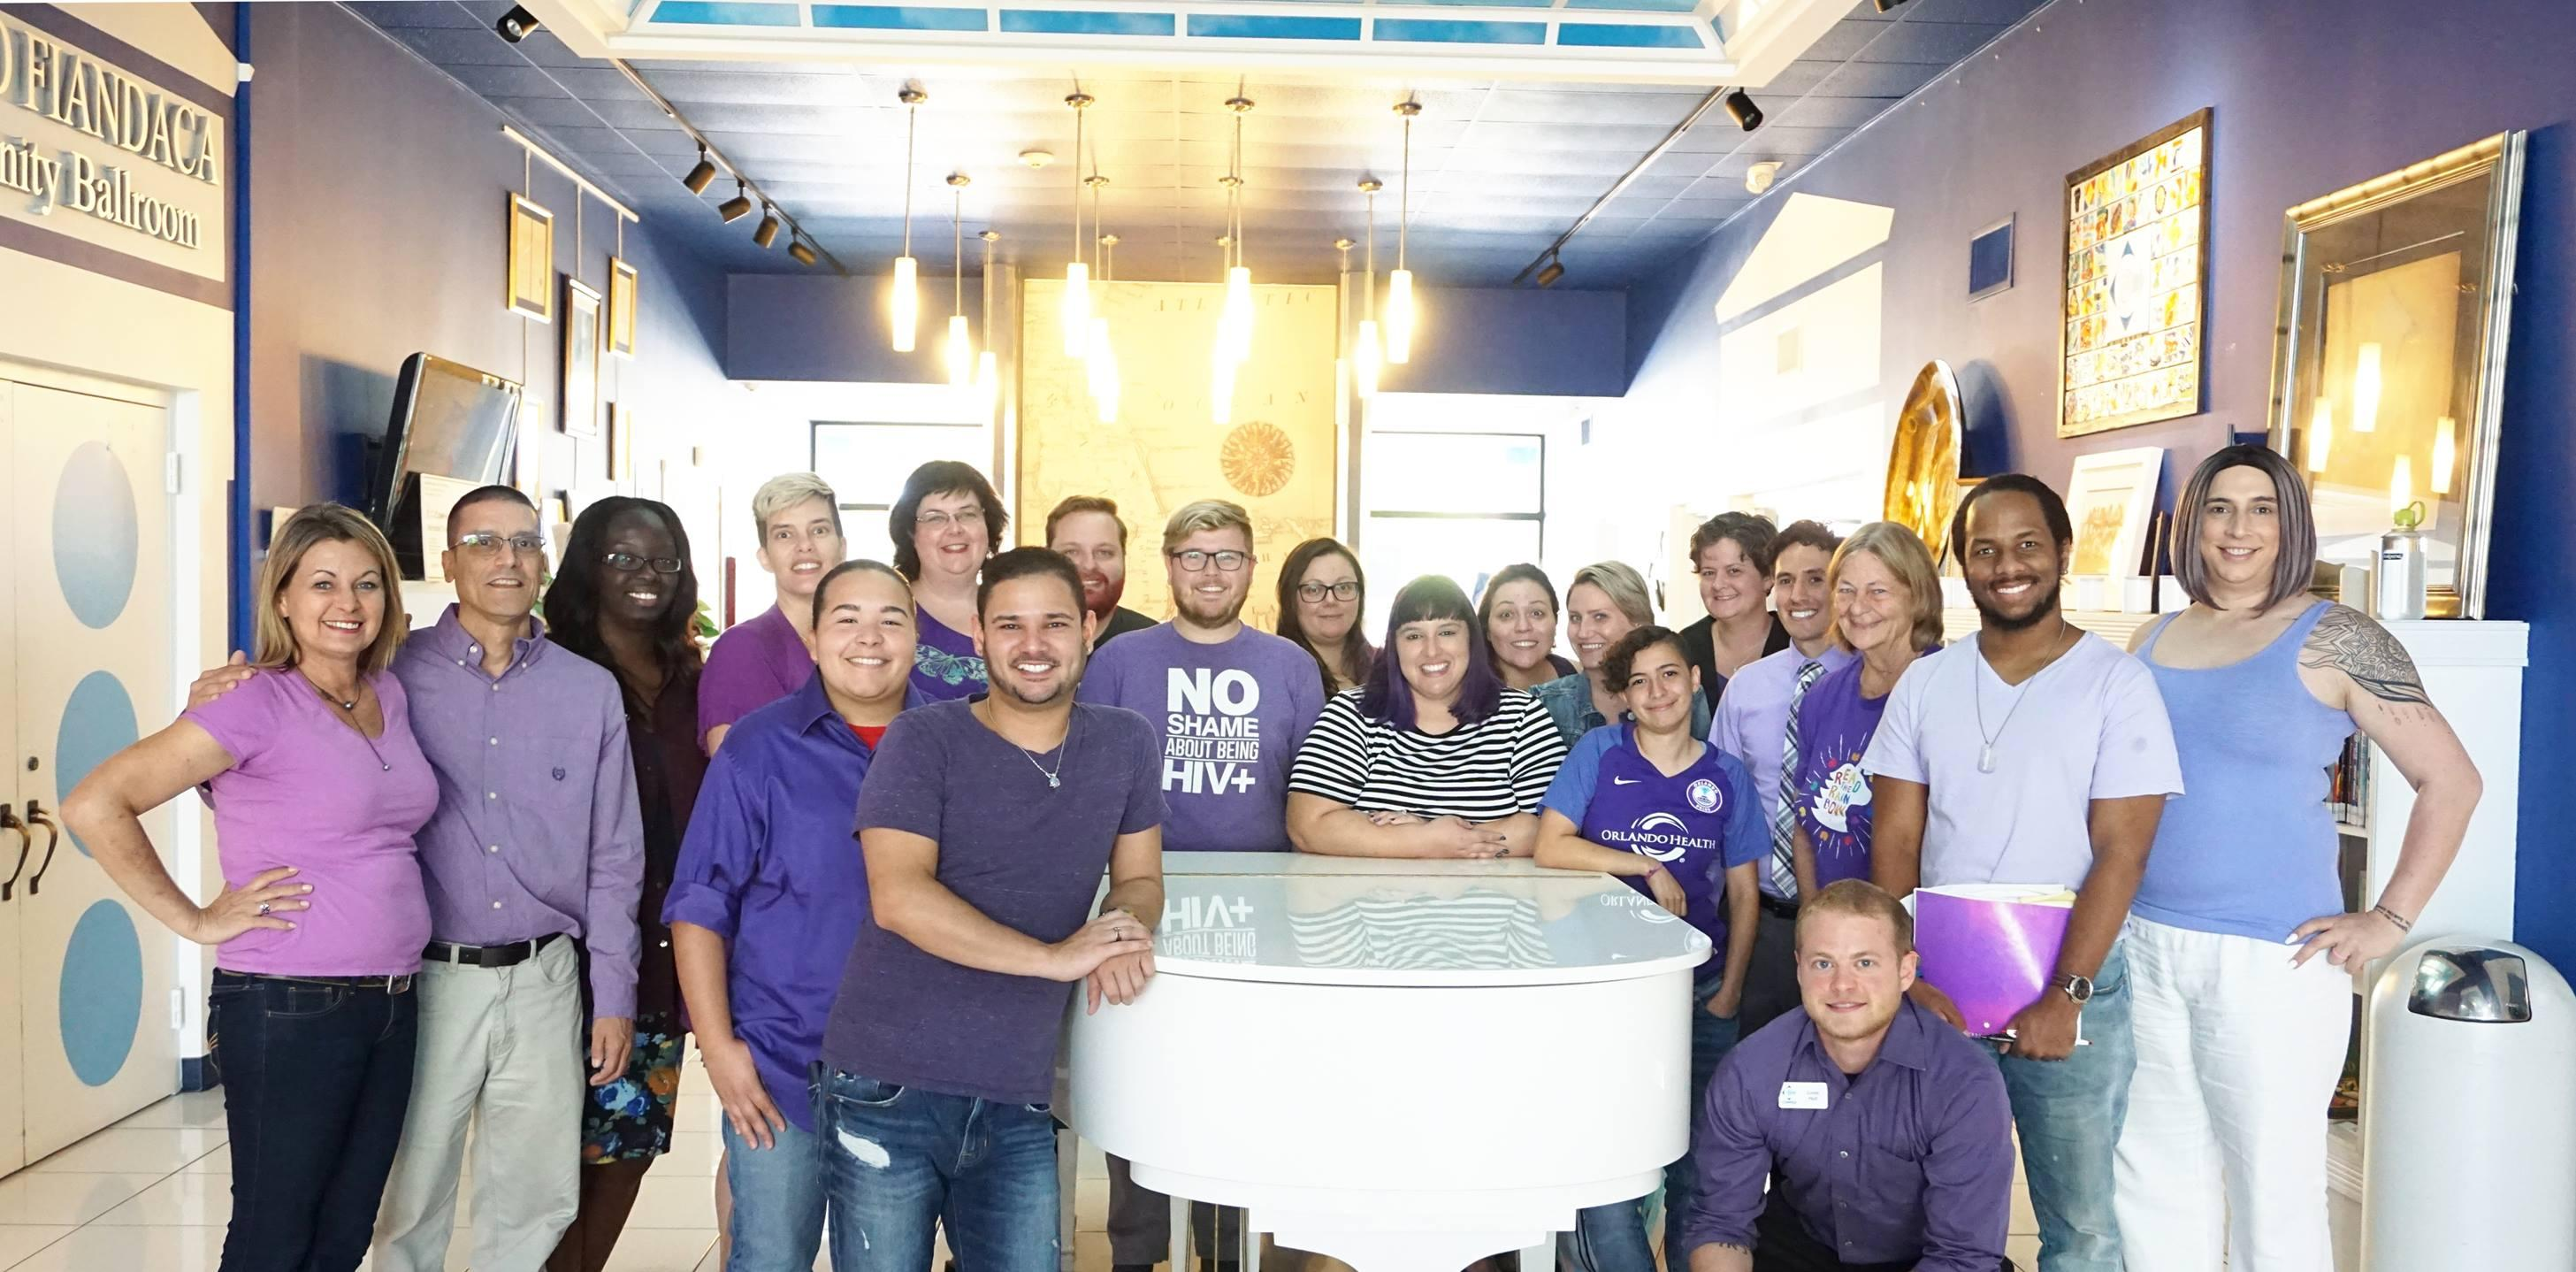 Gonzalez with the Compass staff, all in lavender for anti-bullying campaign.